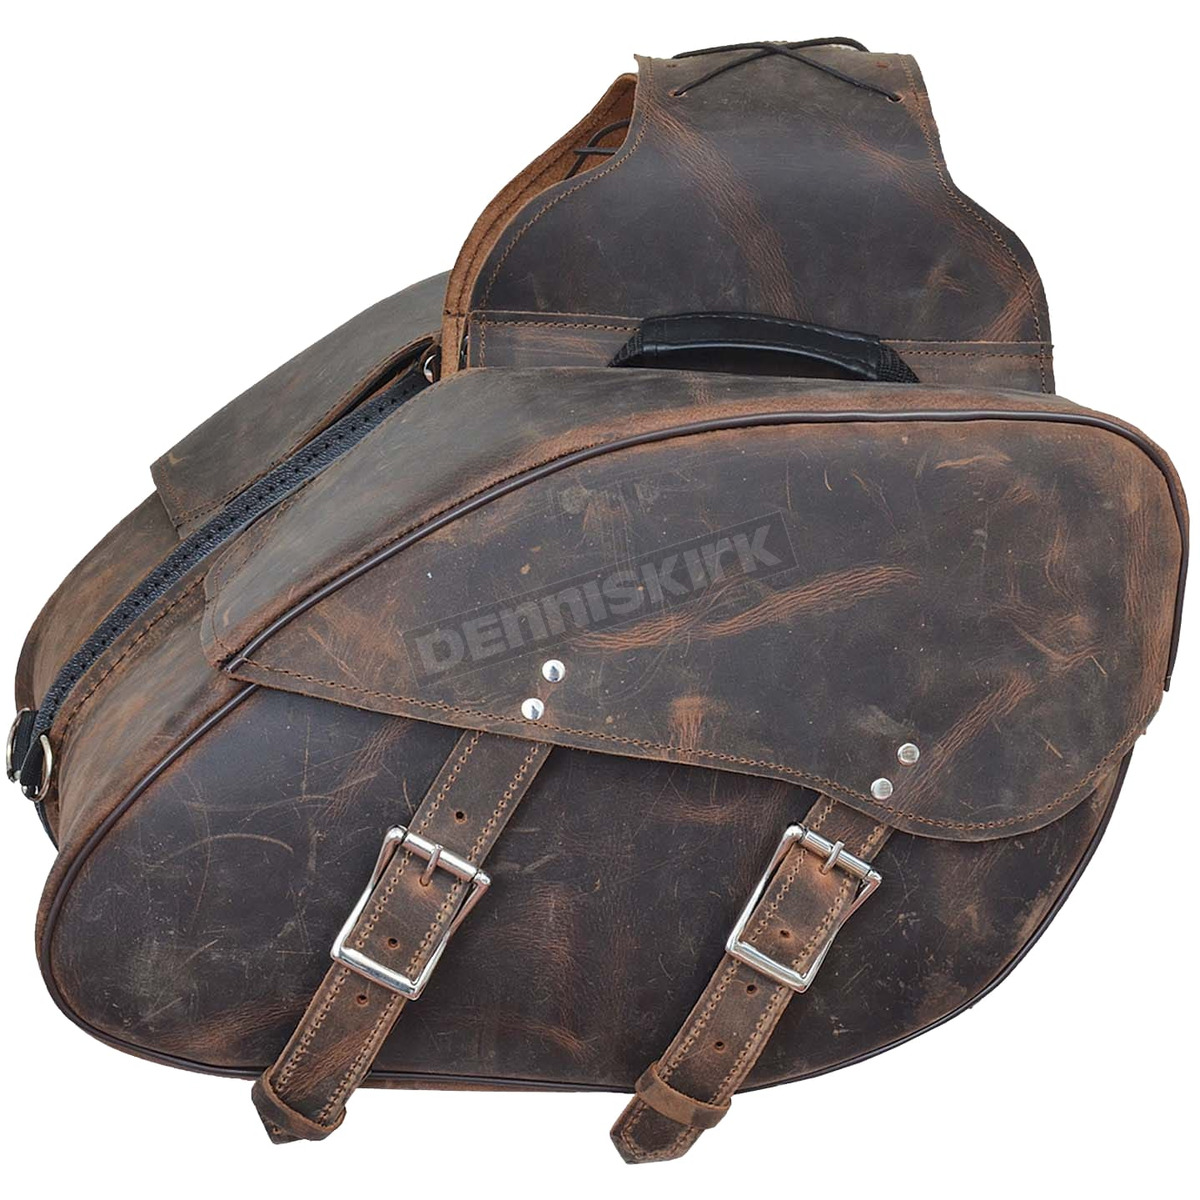 CountrySpeed Sports Saddle BROWN Stitched Version